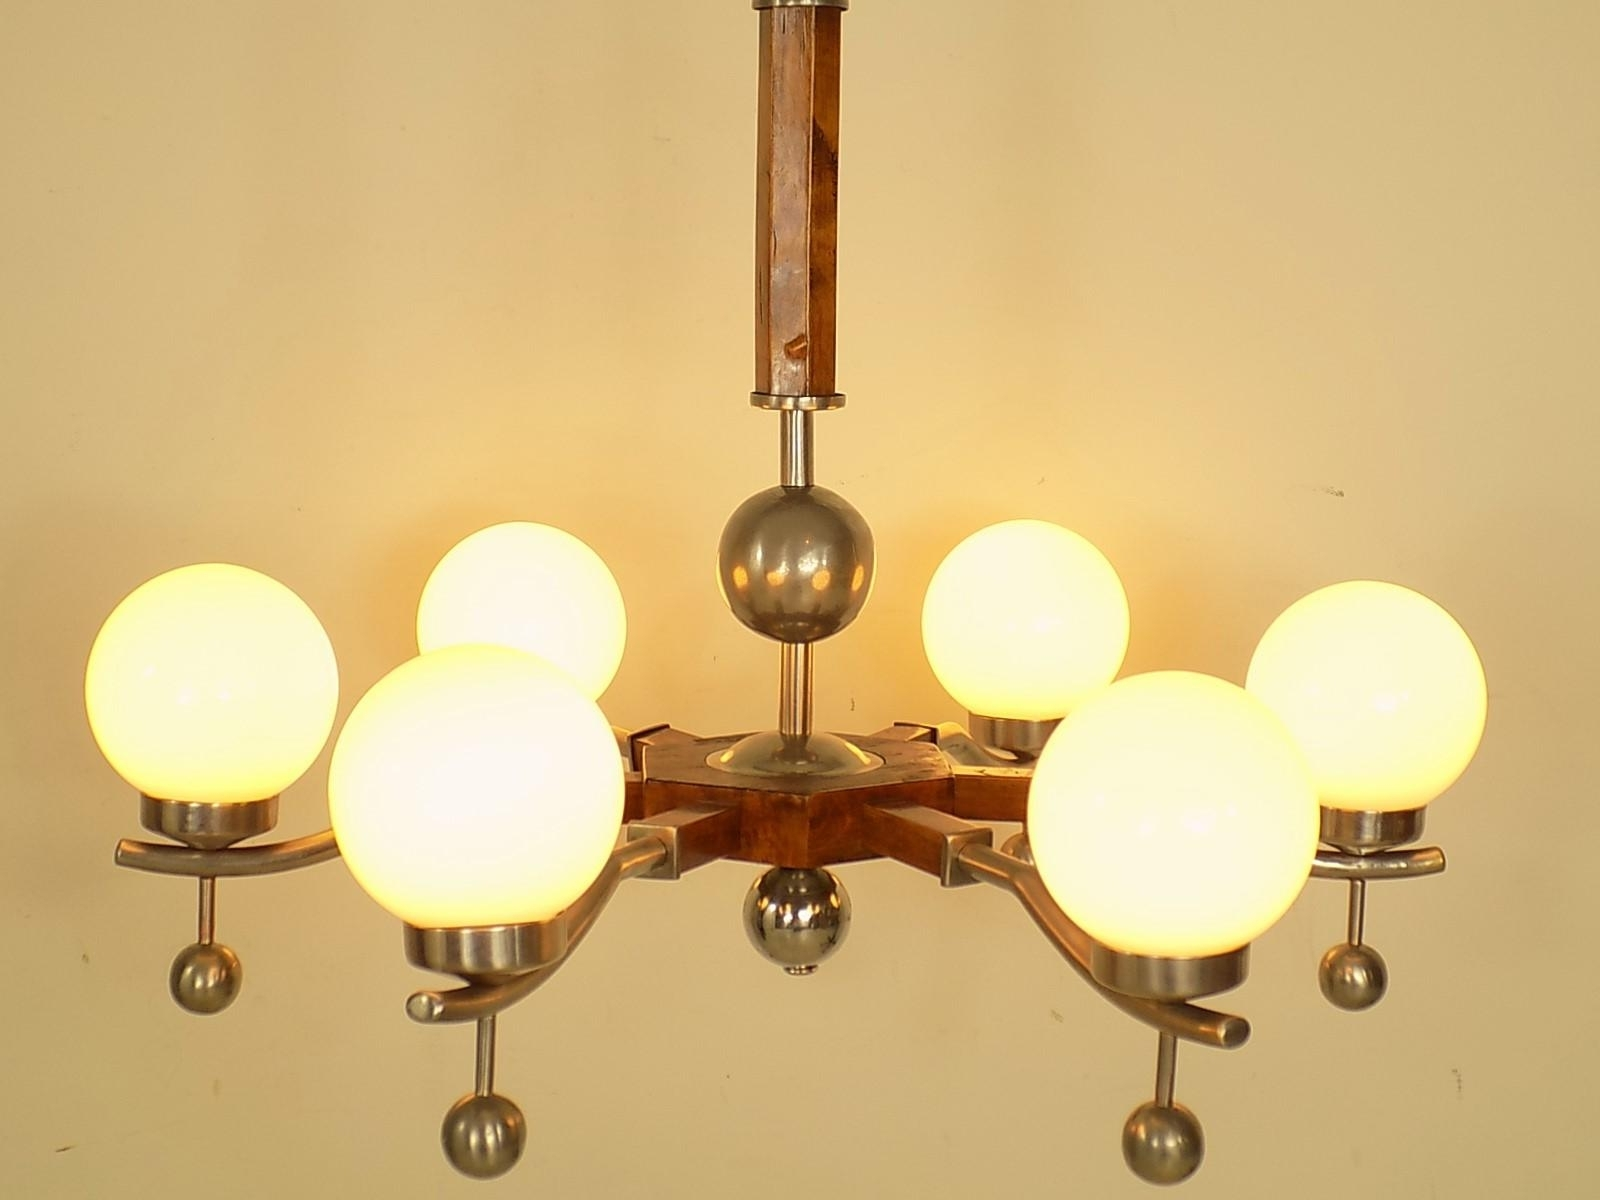 Newest Art Deco Chandelier, 1930S For Sale At Pamono Inside Art Deco Chandelier (View 2 of 20)